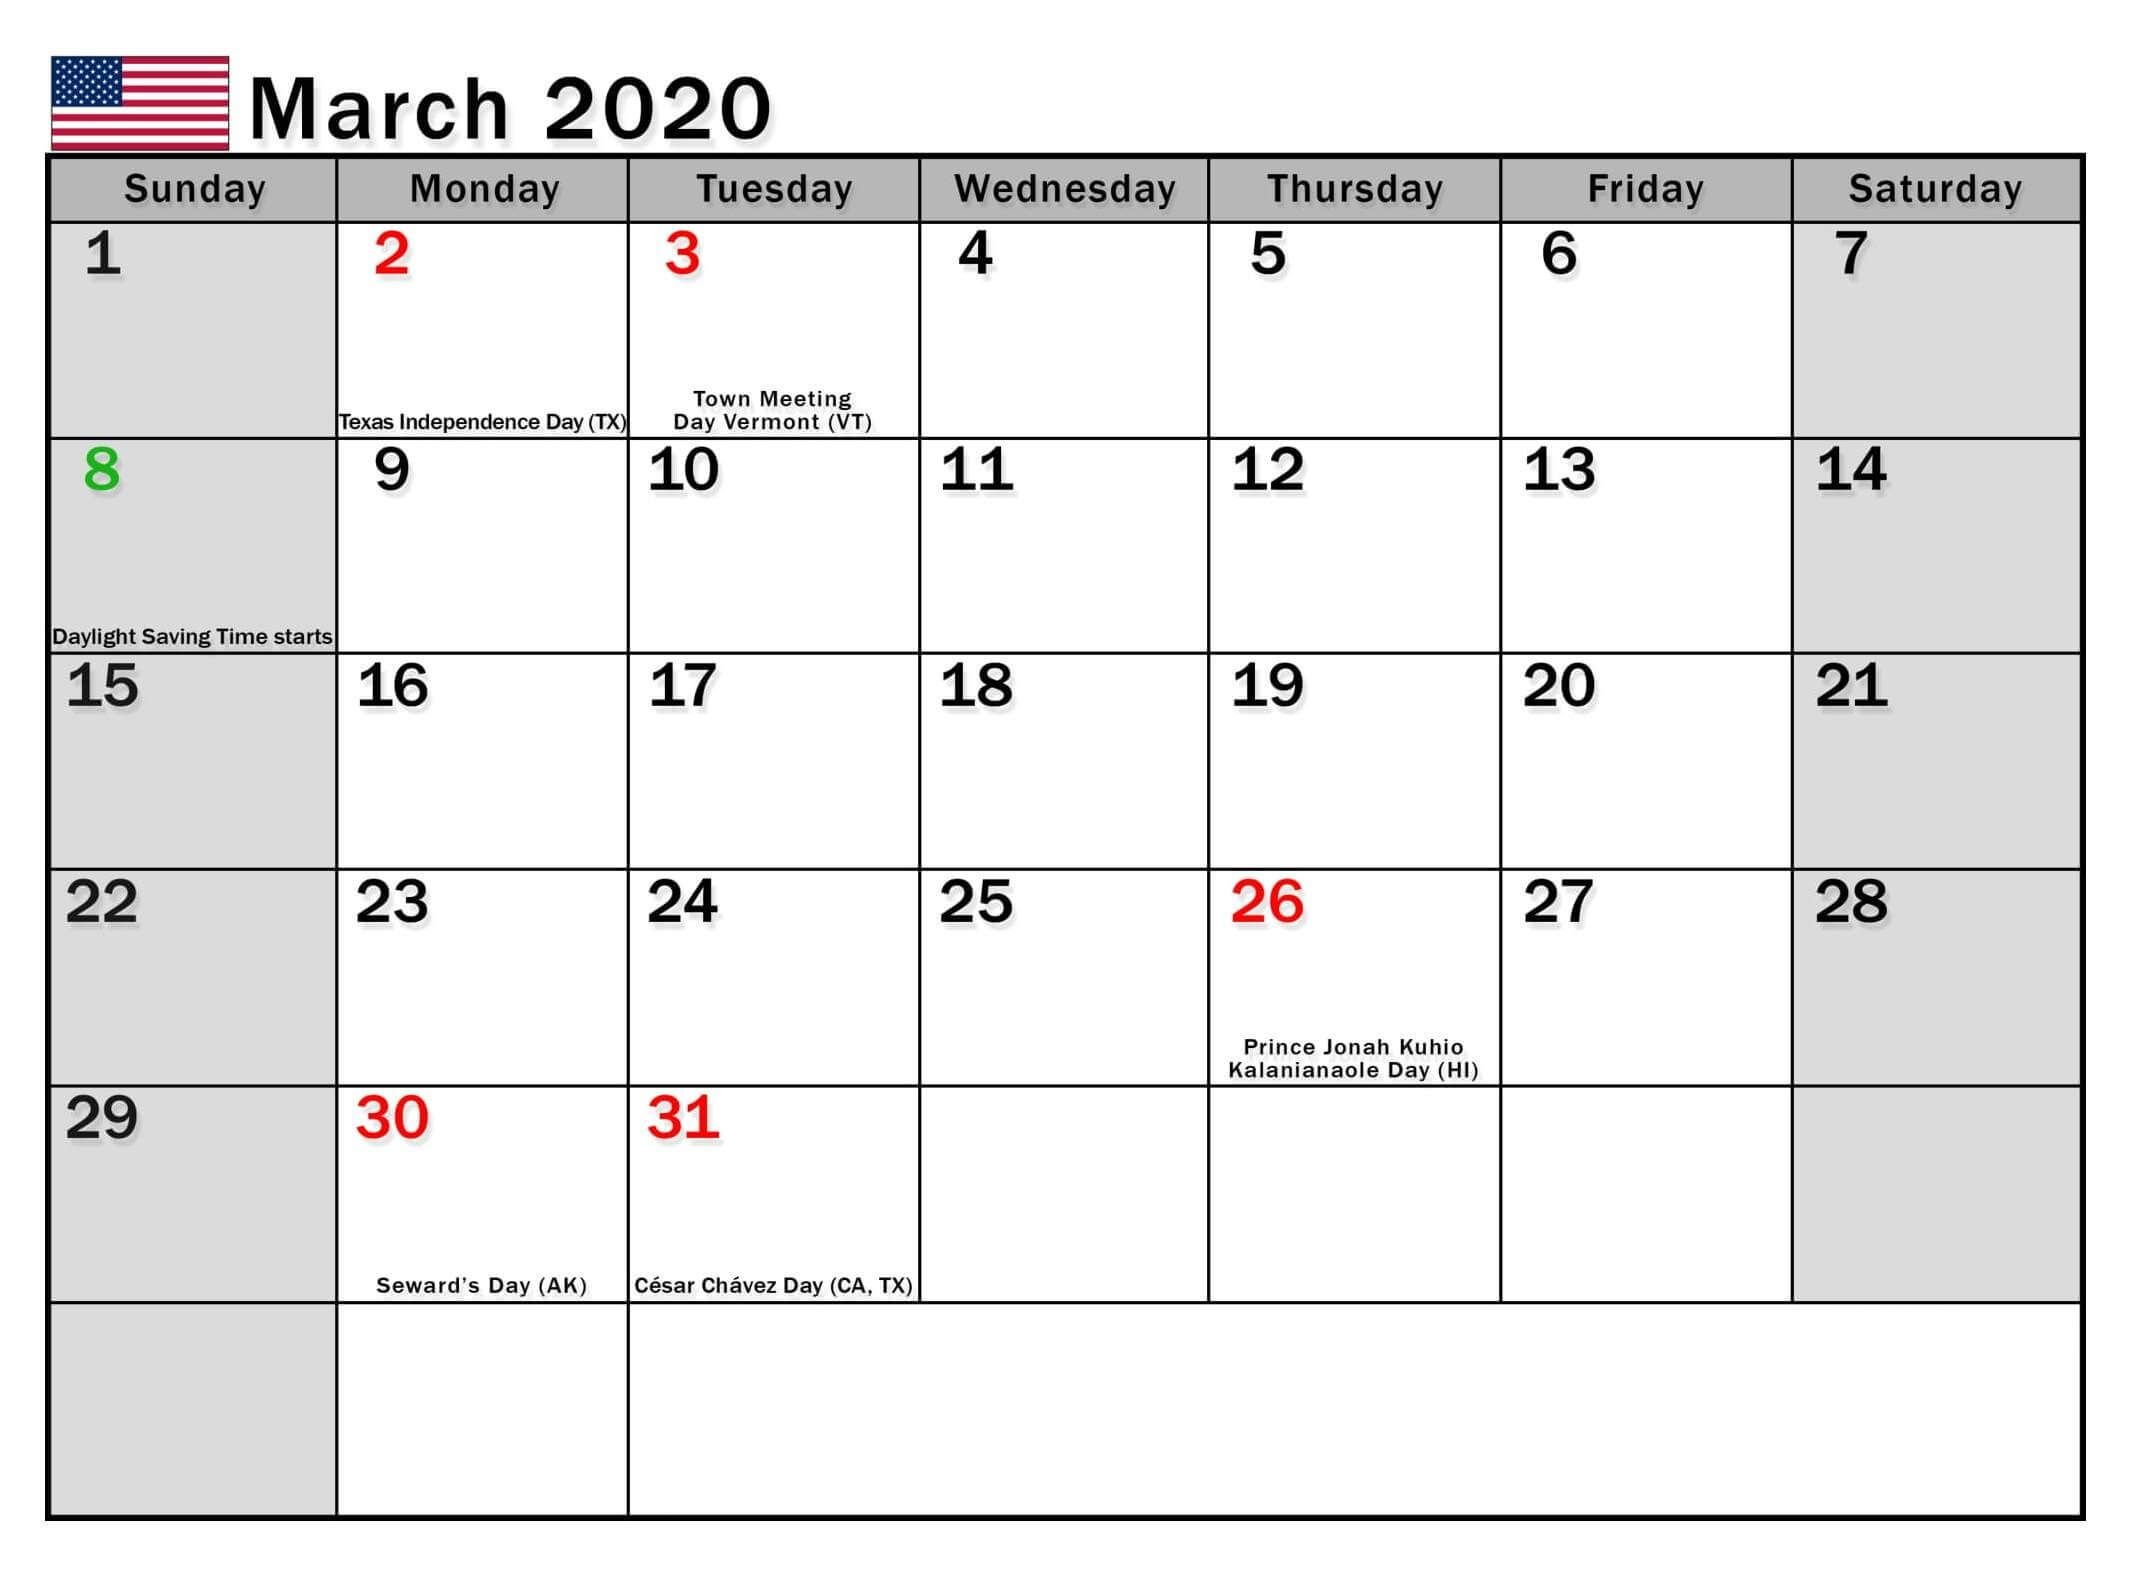 March  2020 Calendar Us Bank Holidays In 2020 | Holiday Calendear That I Can Edit With Holidays On It